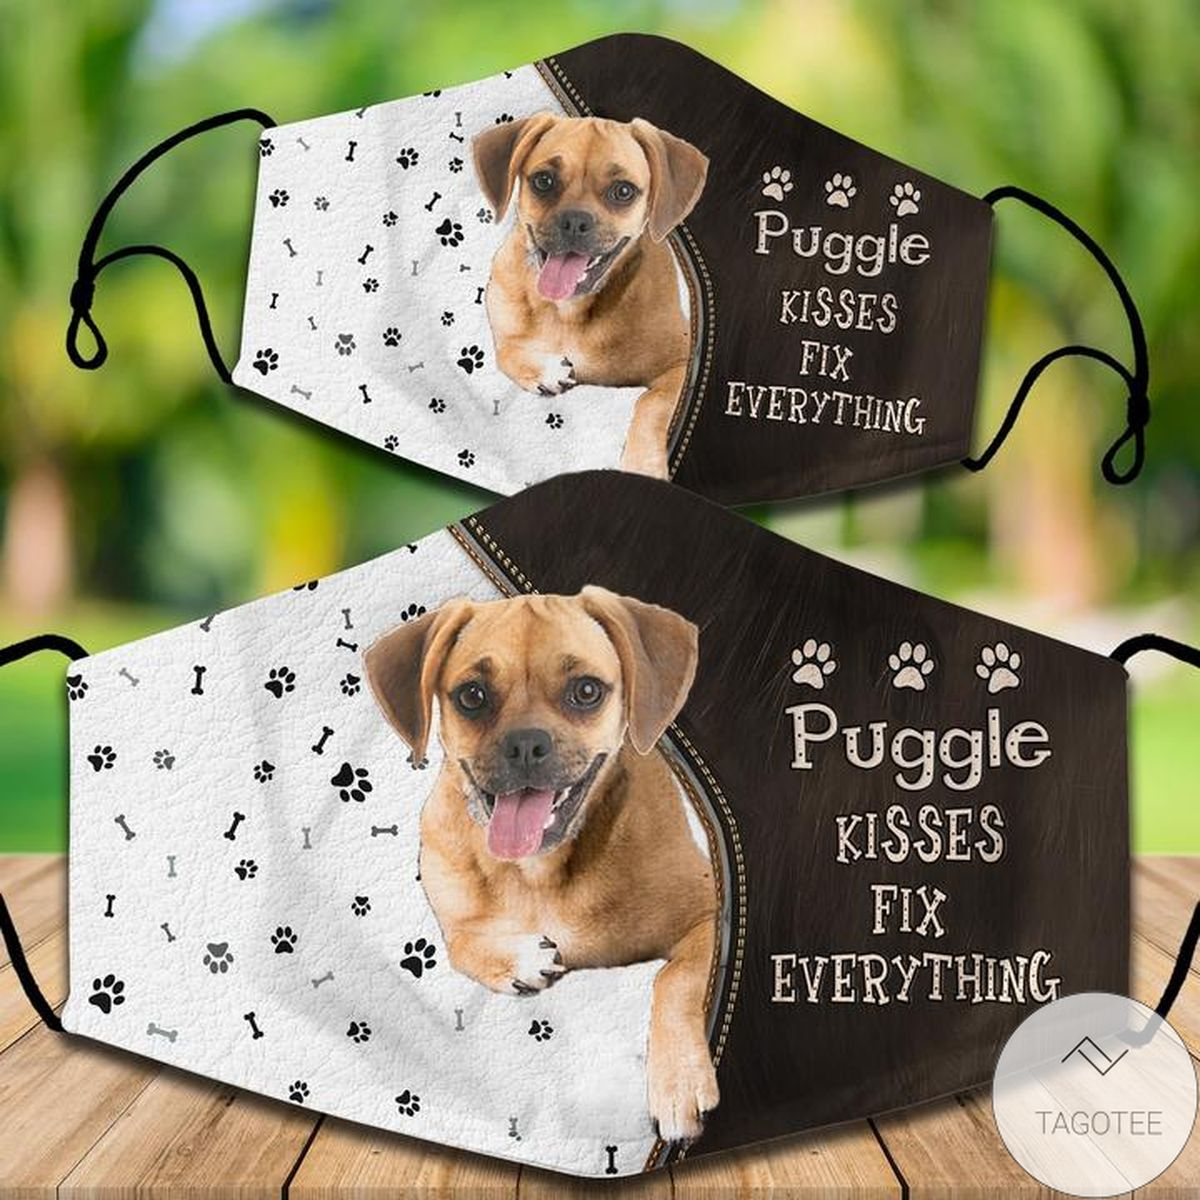 New Puggle Kisses Fix Everything Face Mask